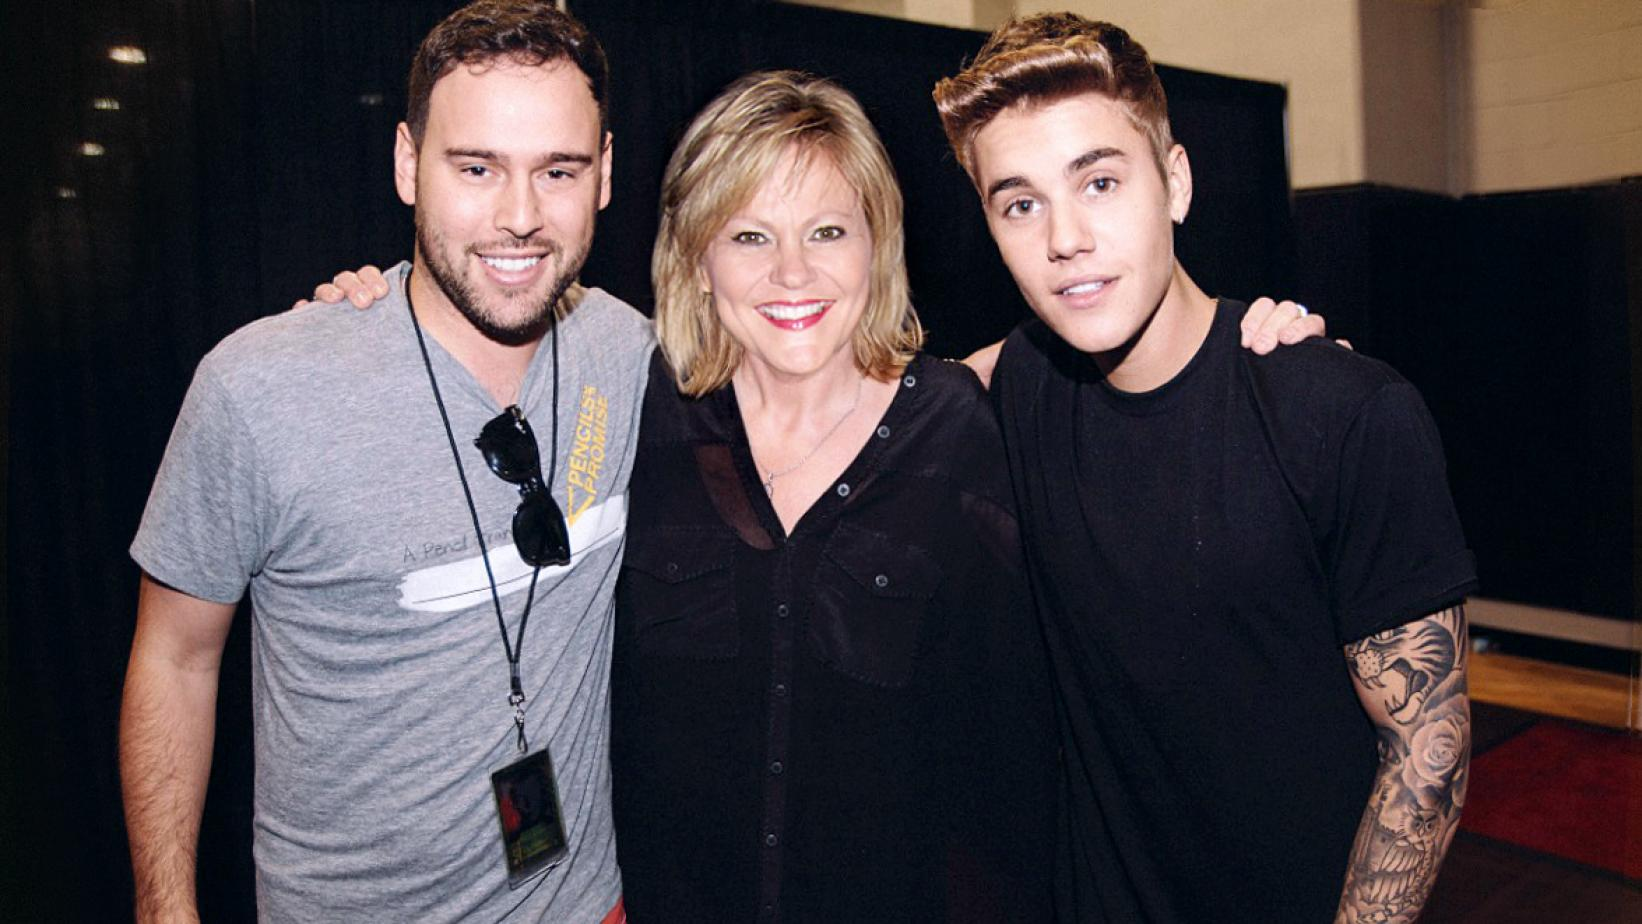 Scooter Braun, Justin Bieber's manager; Jan Smith; and Justin Bieber